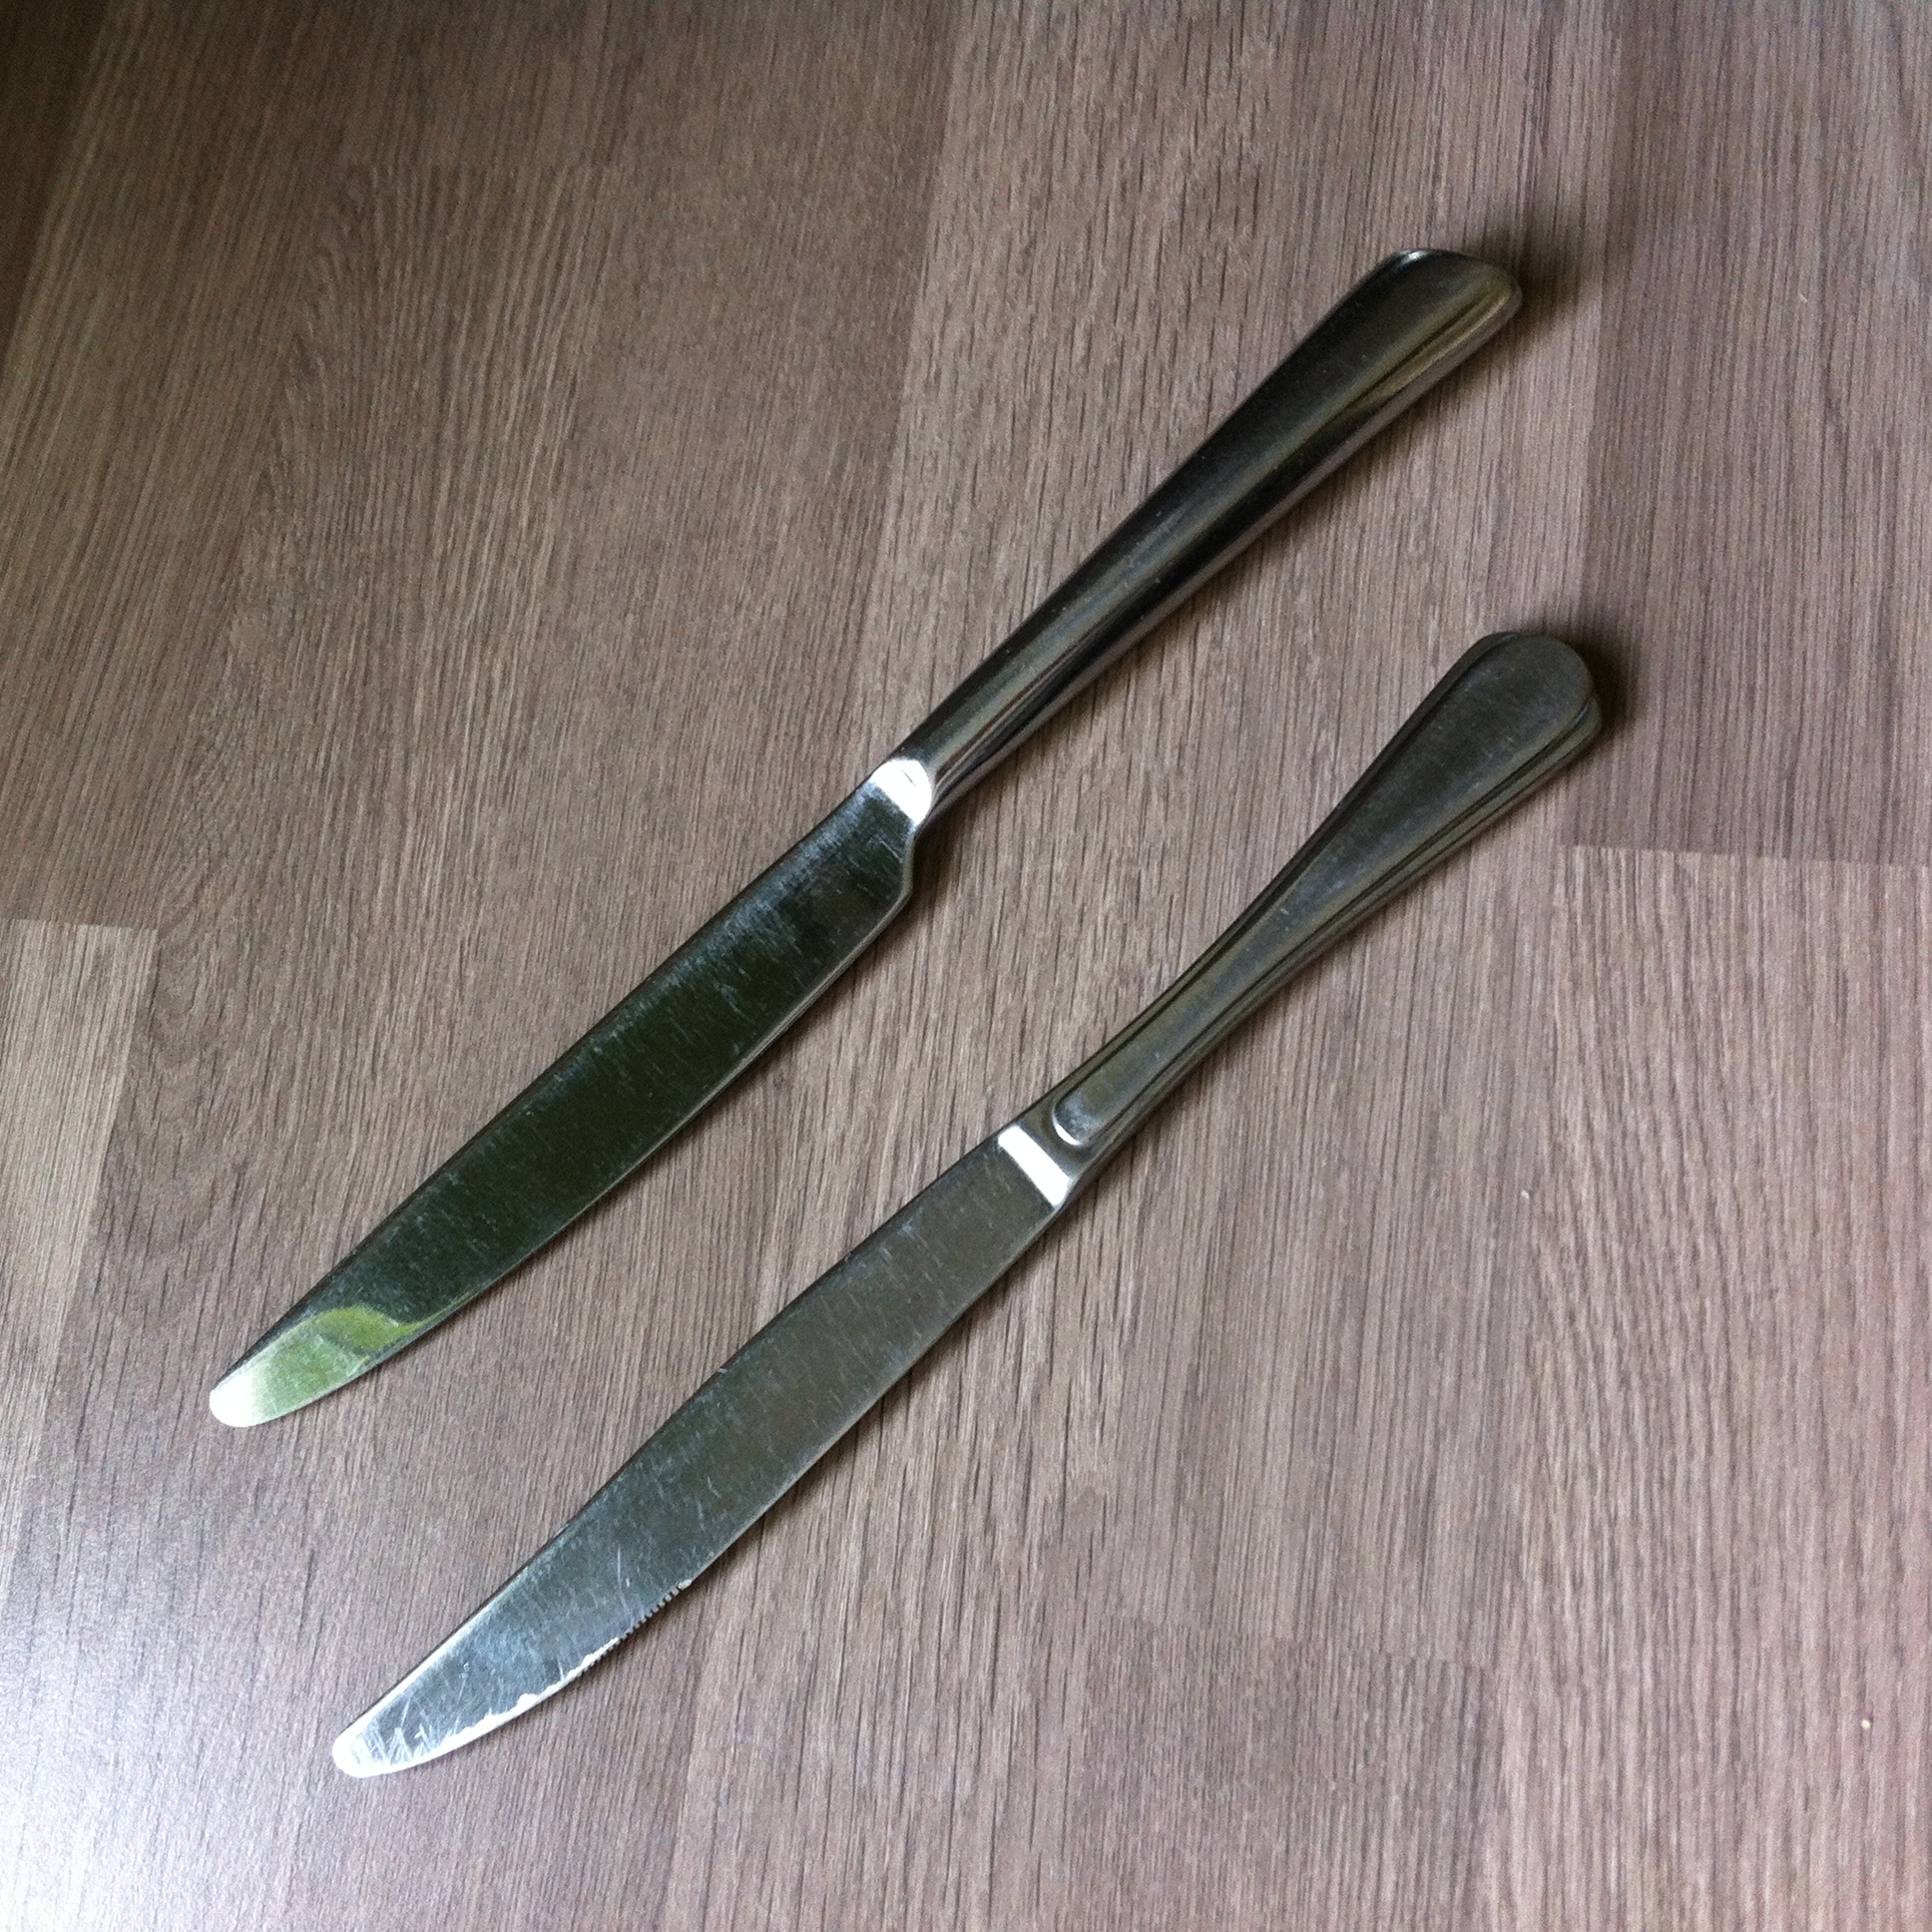 photo of two metal knives